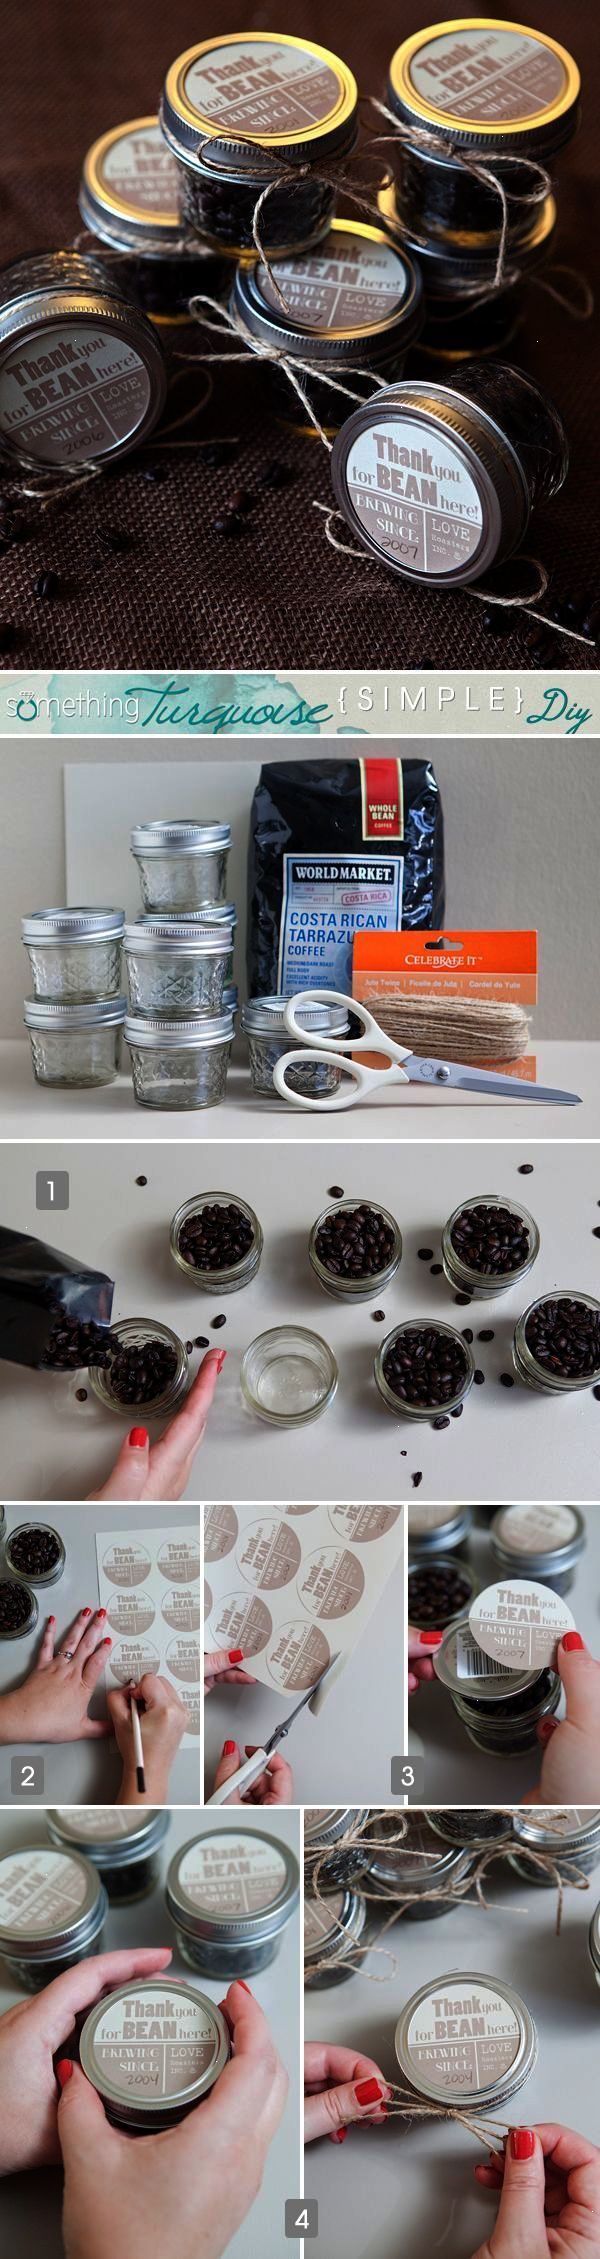 Simple diy coffee jar favors or use little plastic bags and put